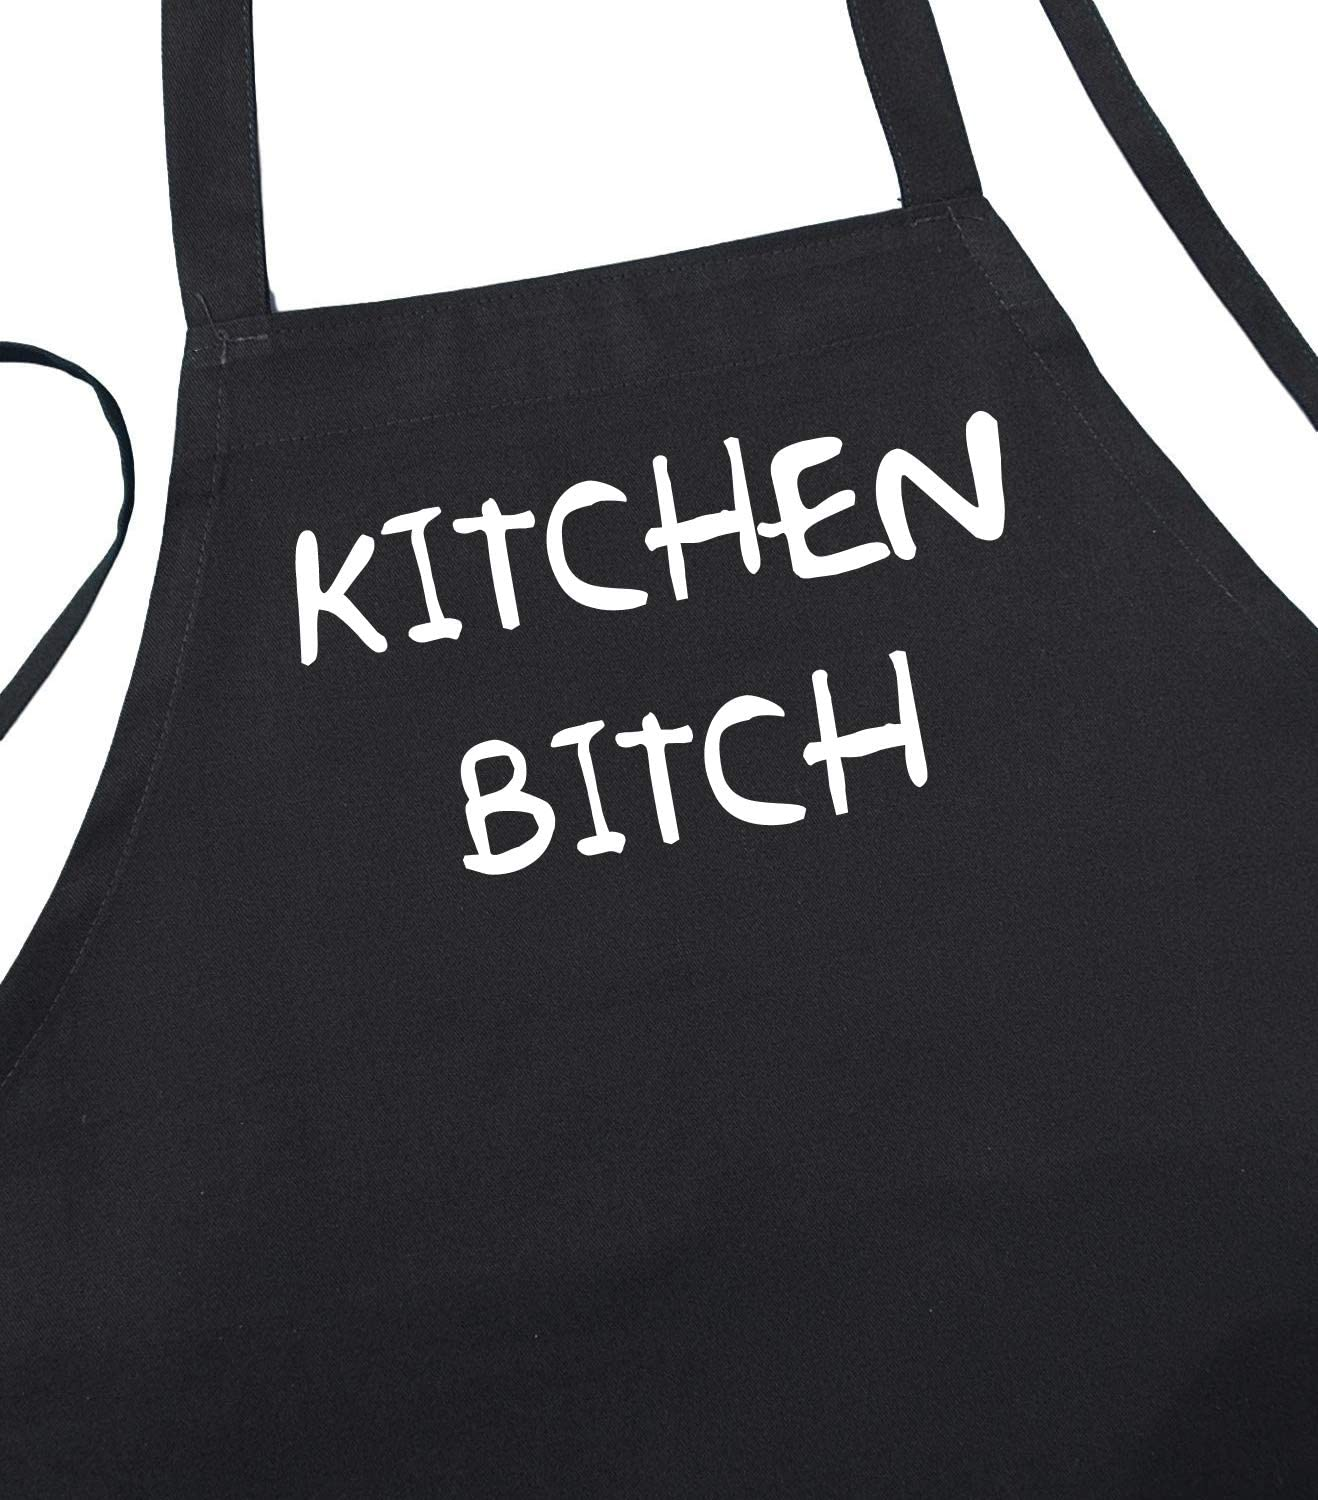 Kitchen Max 47% OFF Bitch Funny Black Limited time sale Cooking Apron for